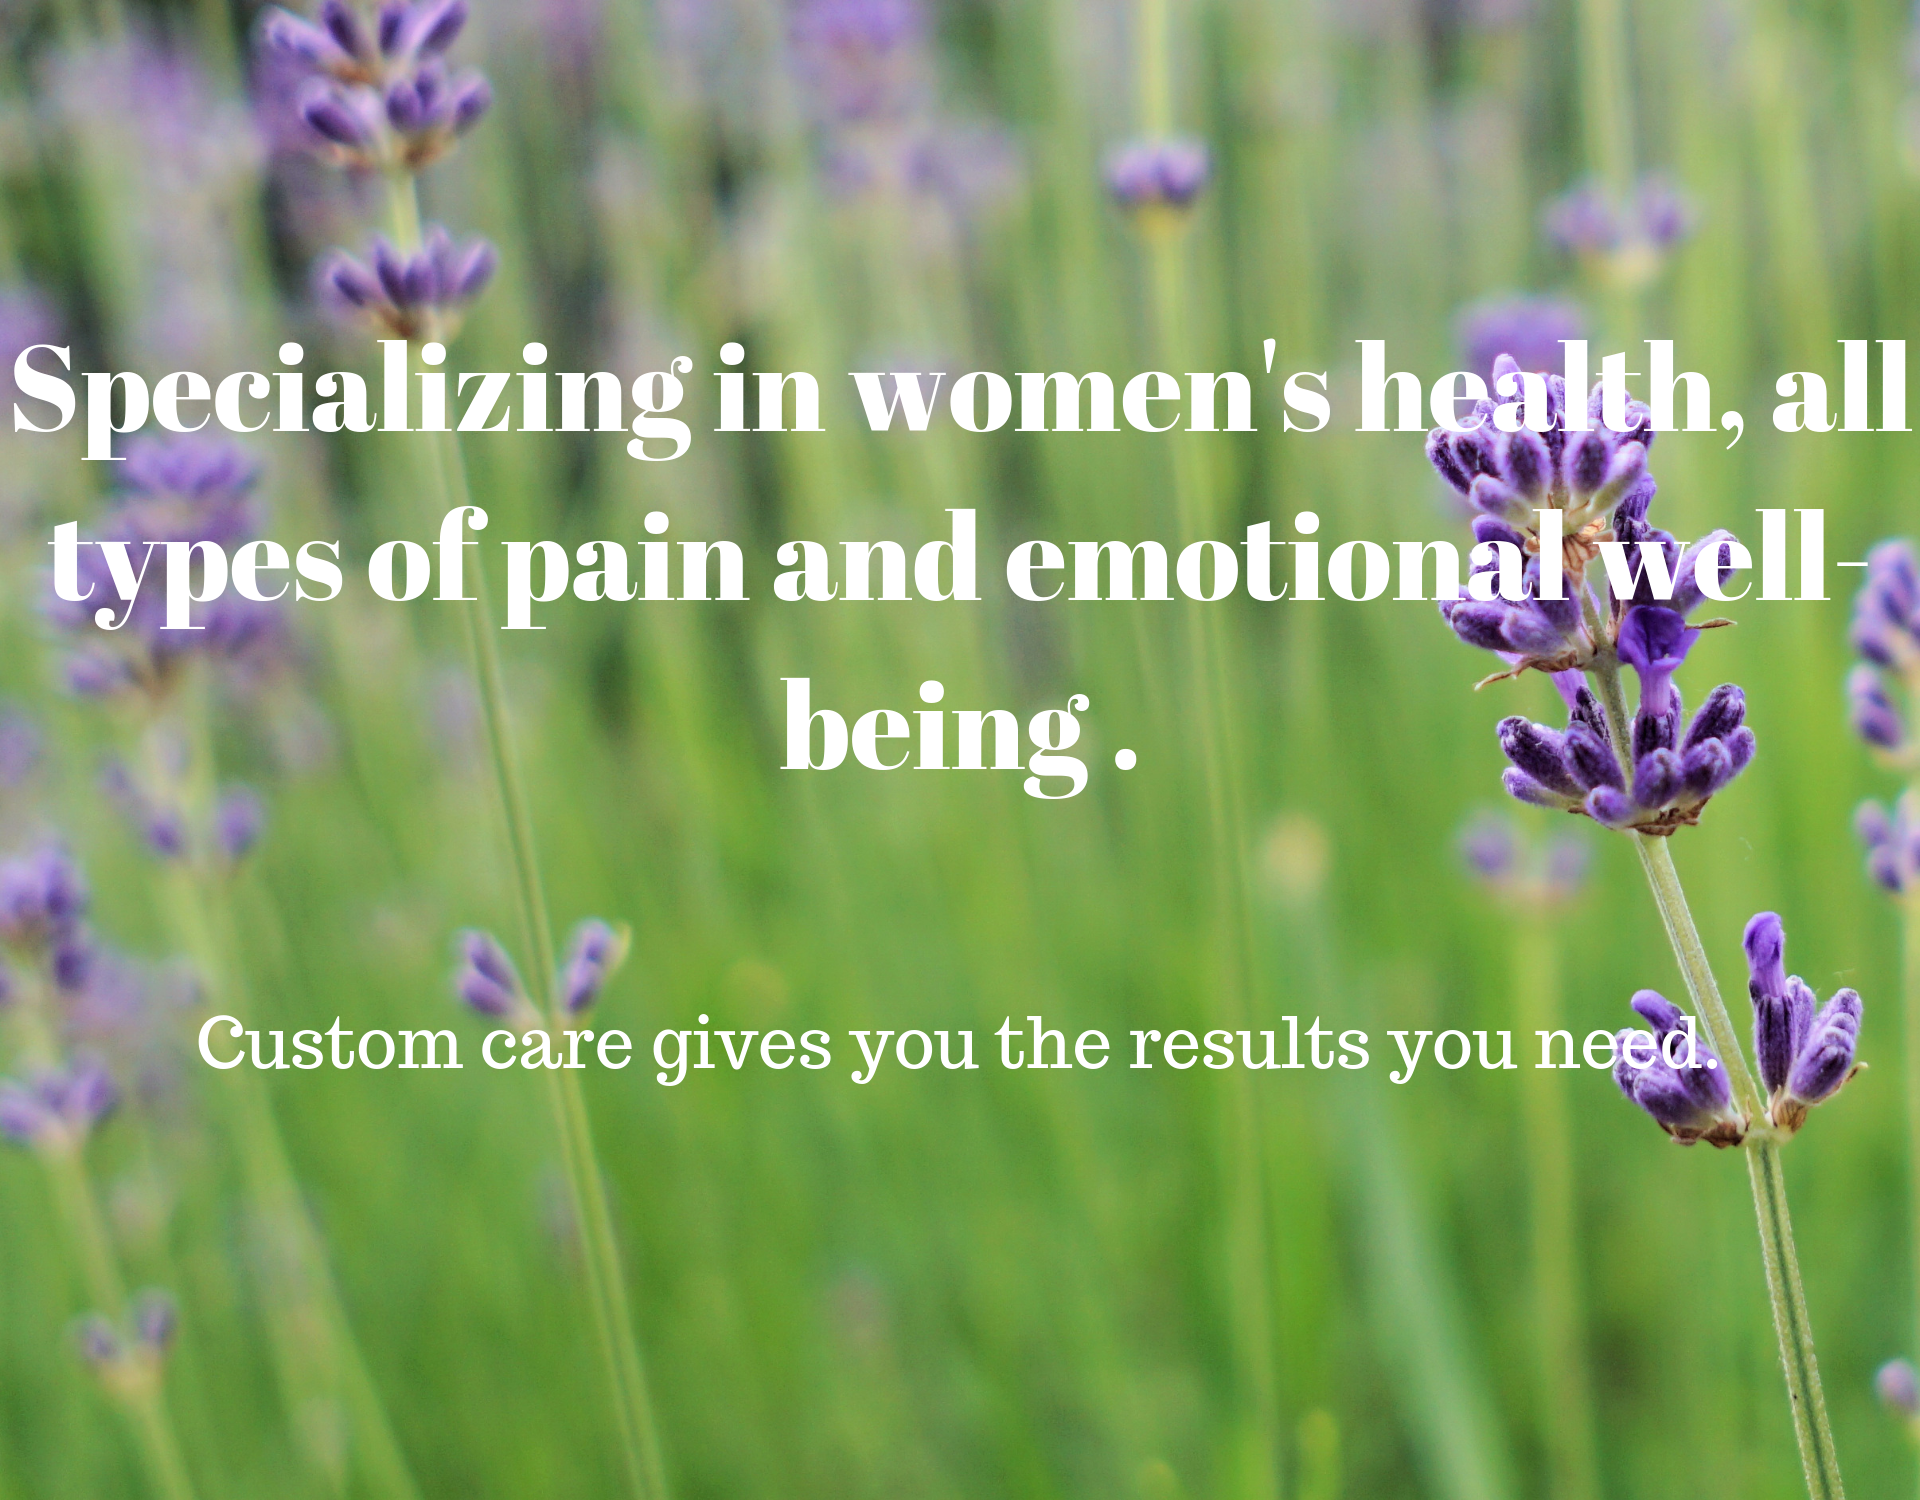 Specializing in women's health, emotional well-being and all types of pain..png